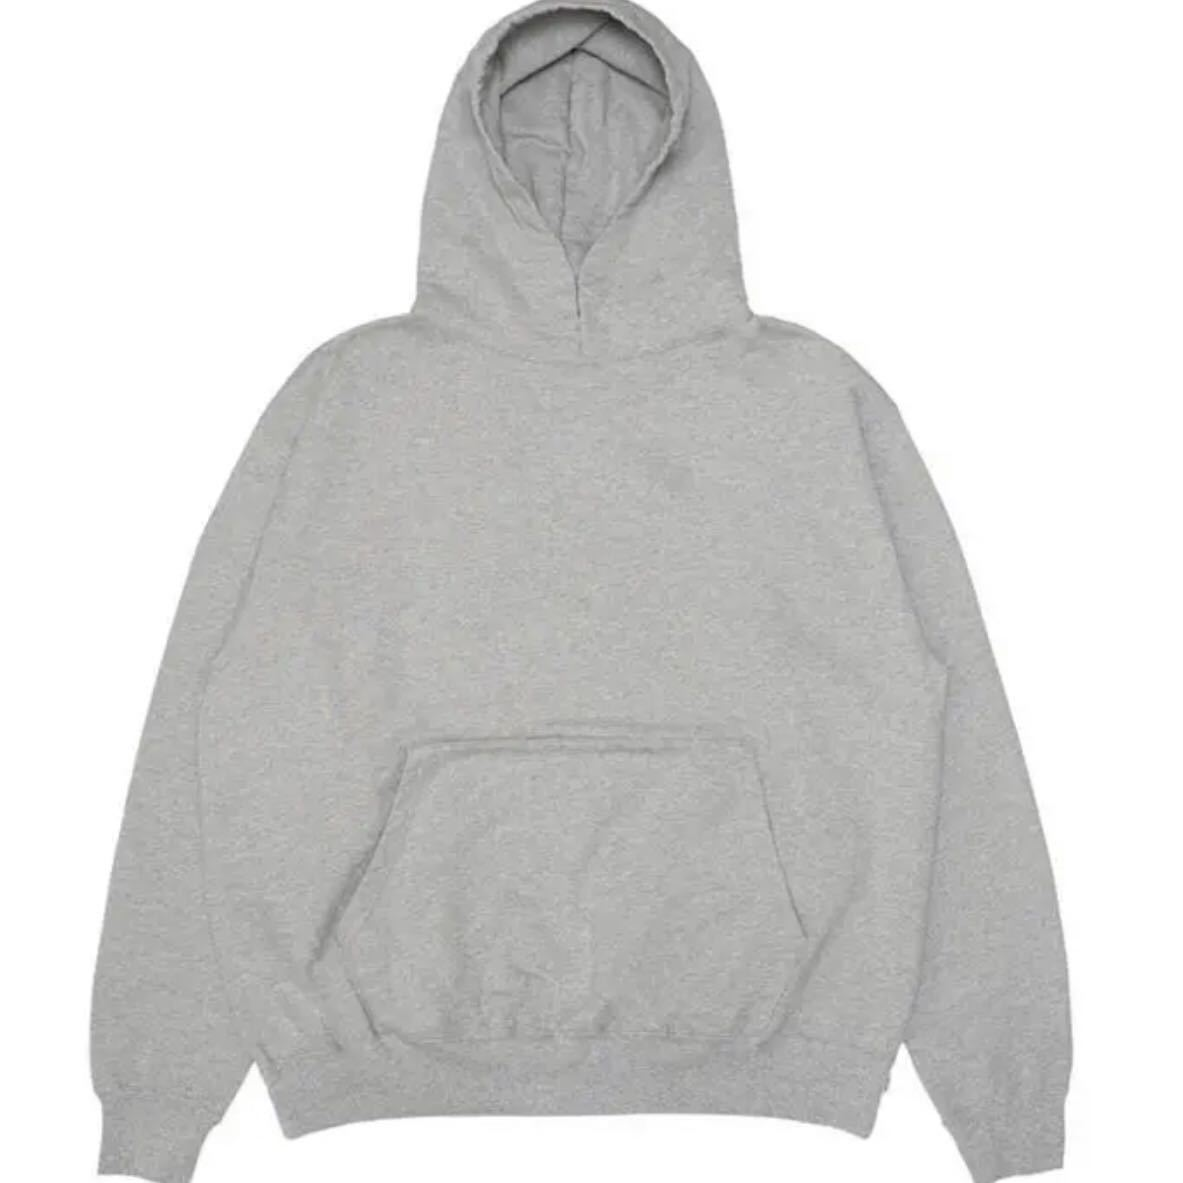 cup and cone Forward Weave Hoodie size 2 supreme minnano champion reverse weave 無地 グレイ灰色_画像4